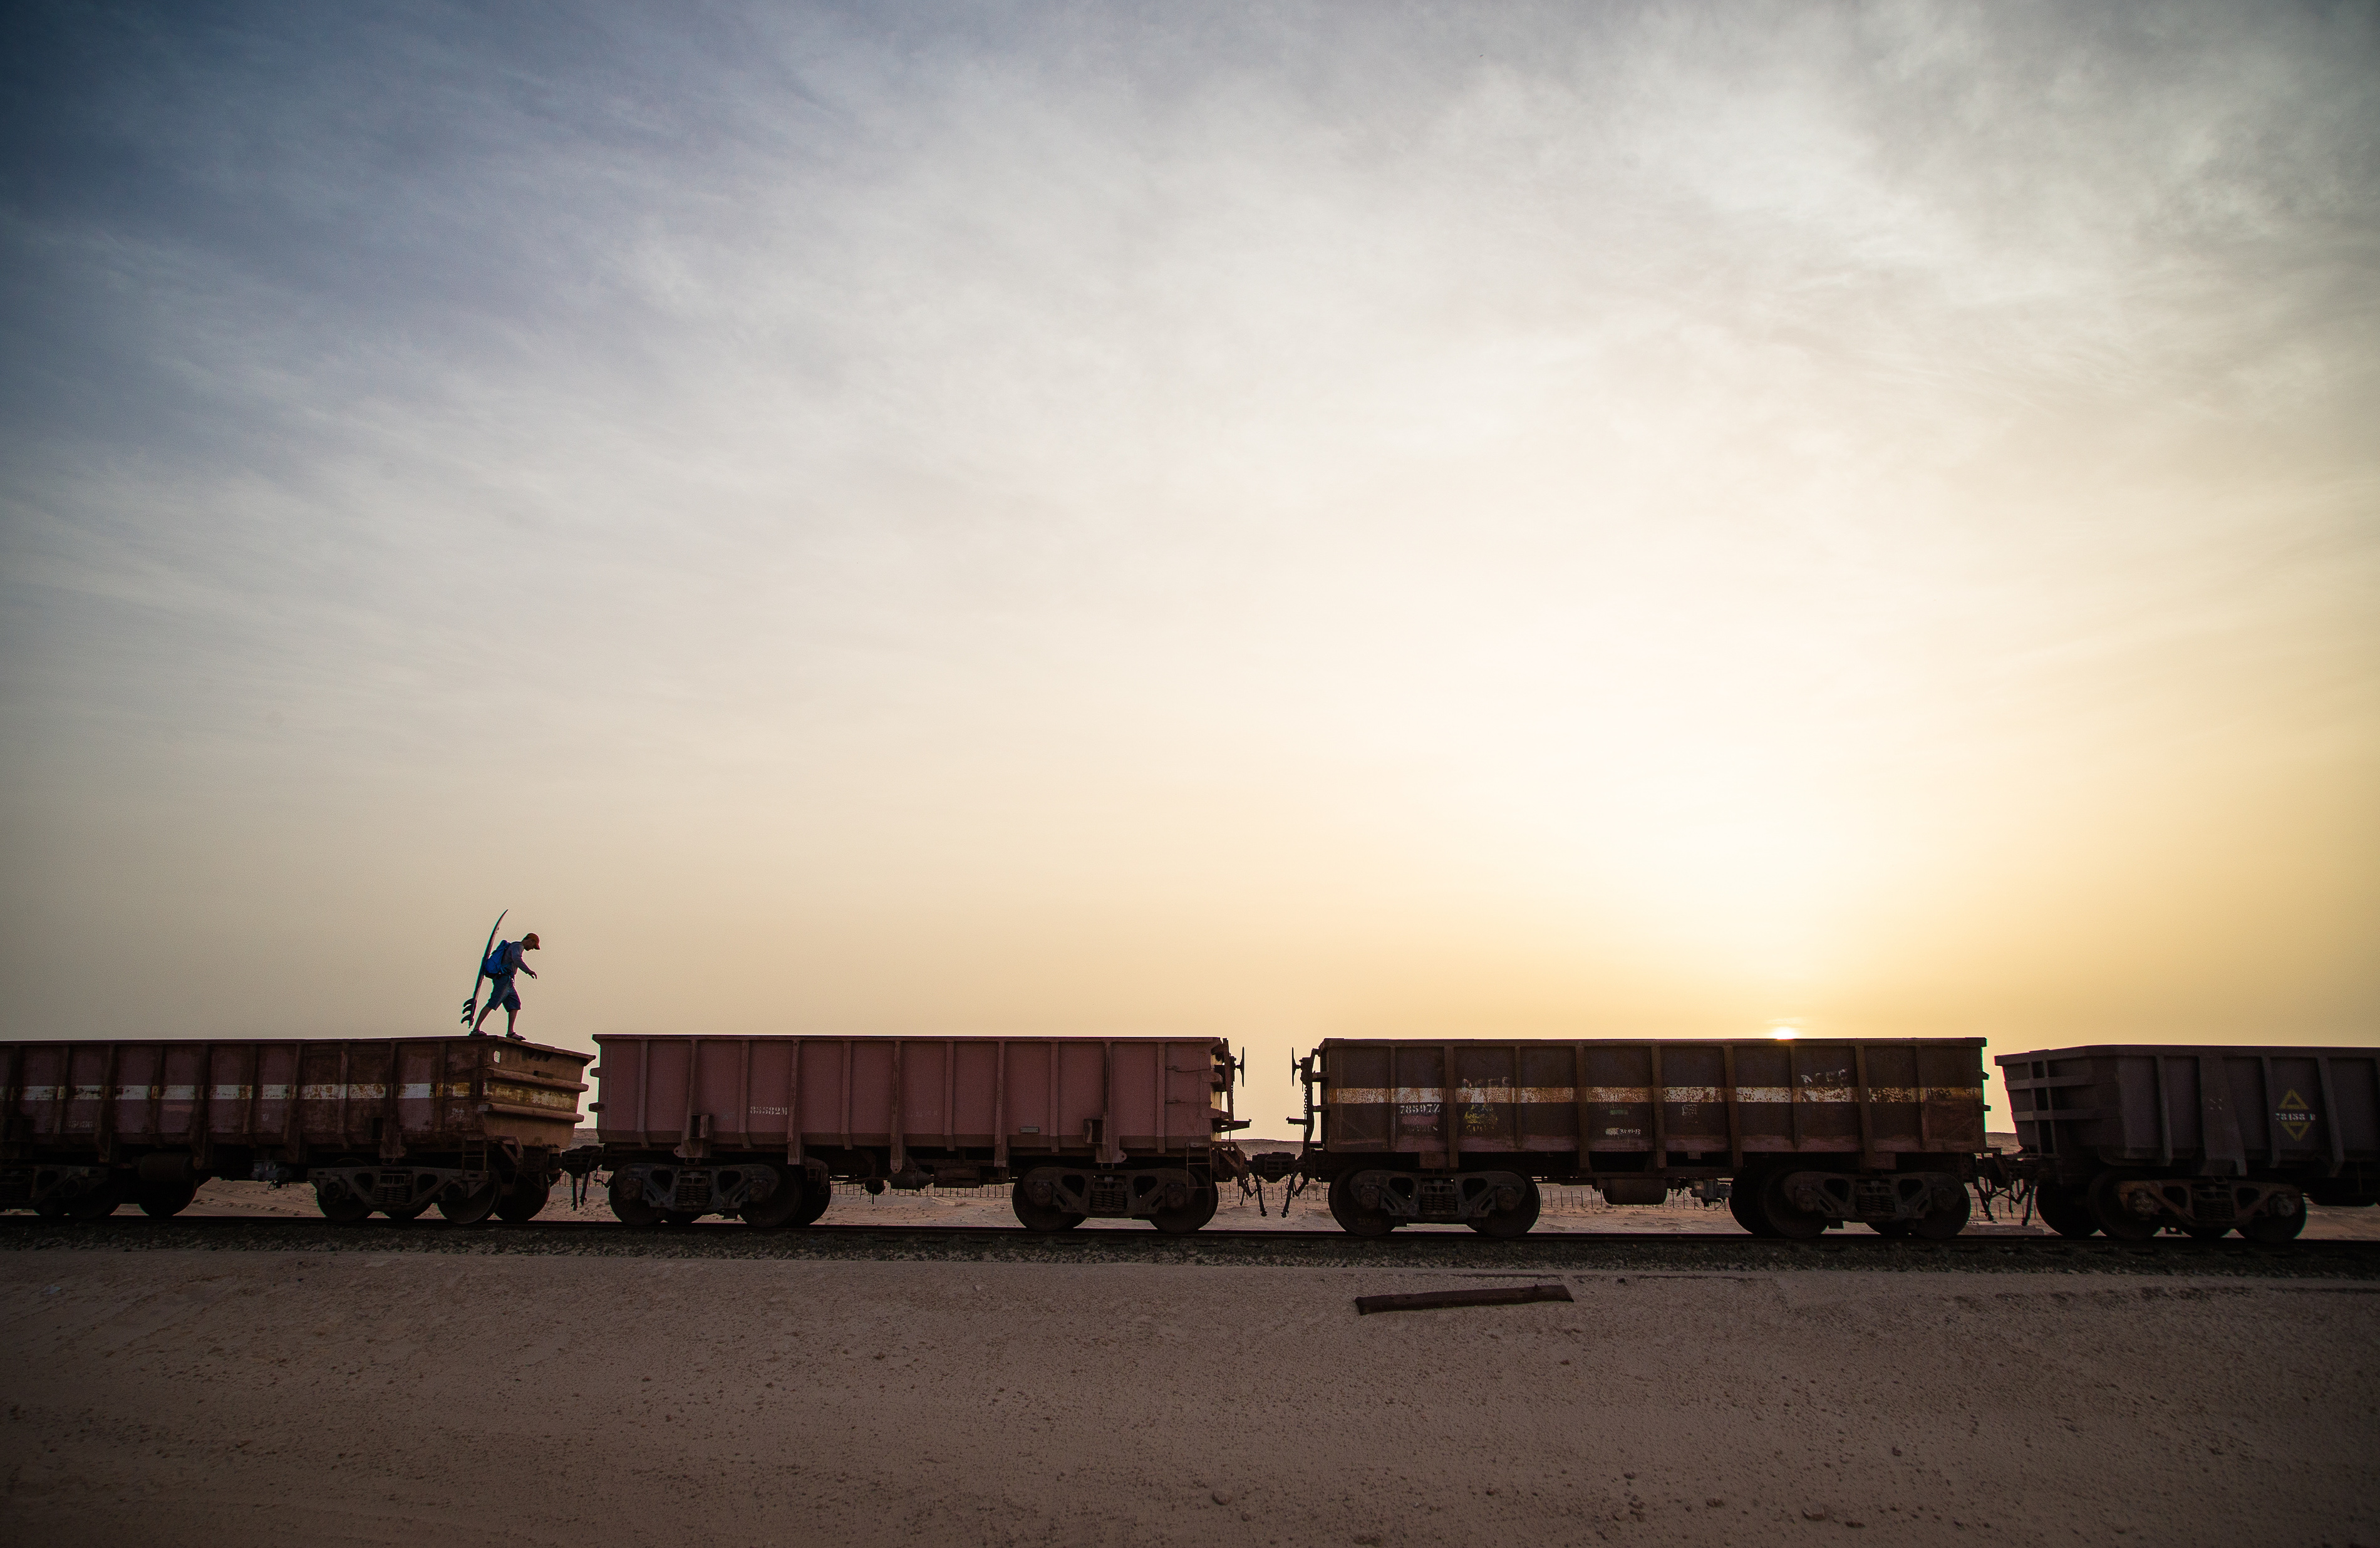 this photographer hopped freight trains through the sahara. Black Bedroom Furniture Sets. Home Design Ideas